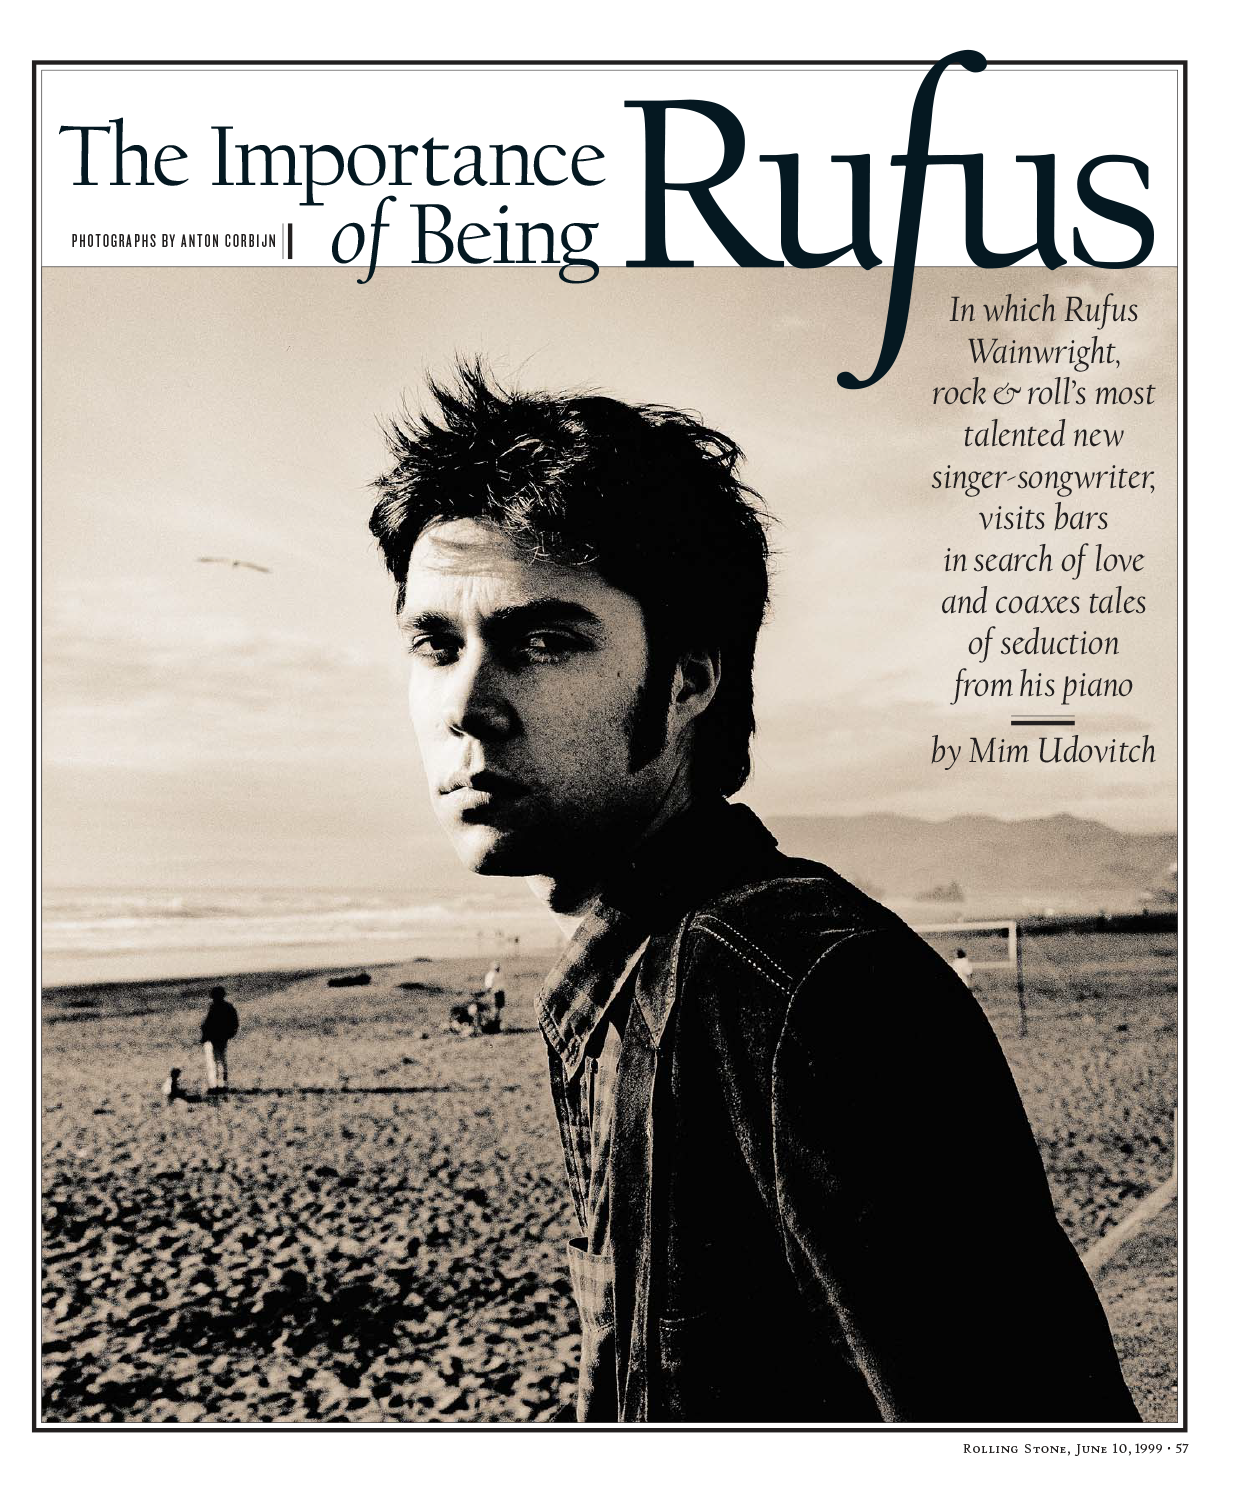 01_01_07 Rufus_LARGE.png